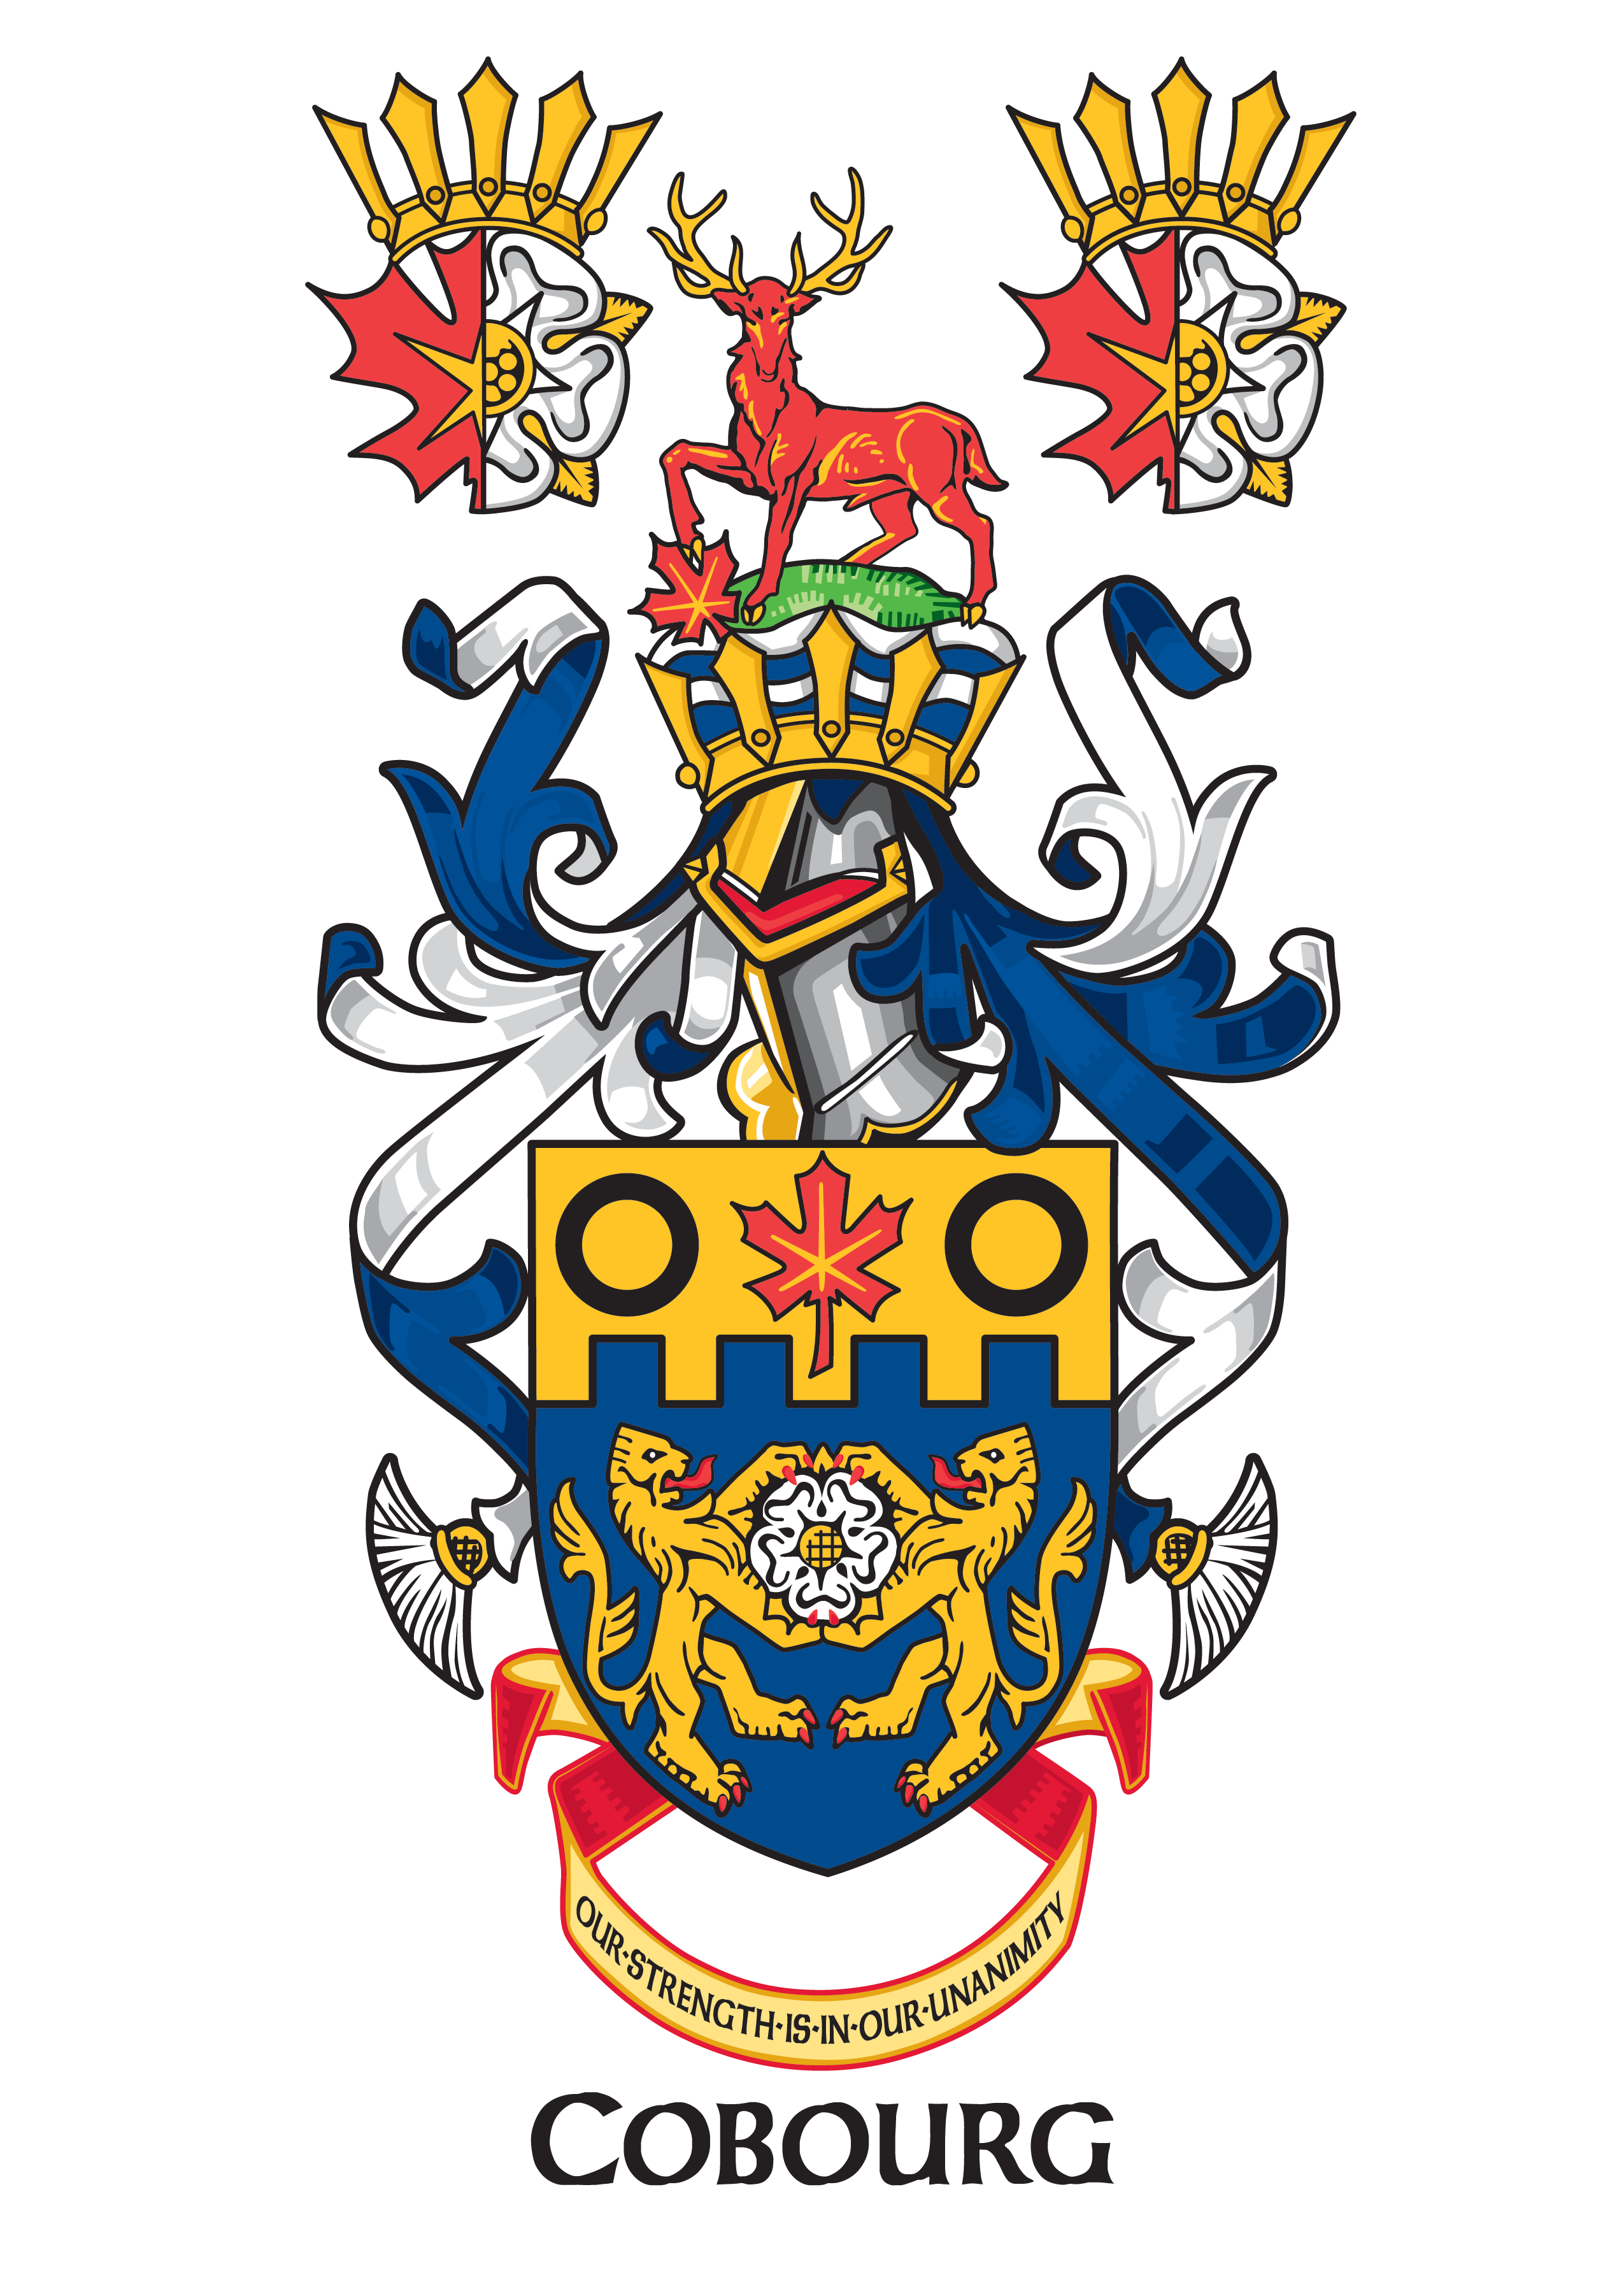 Cobourg_CoatofArms